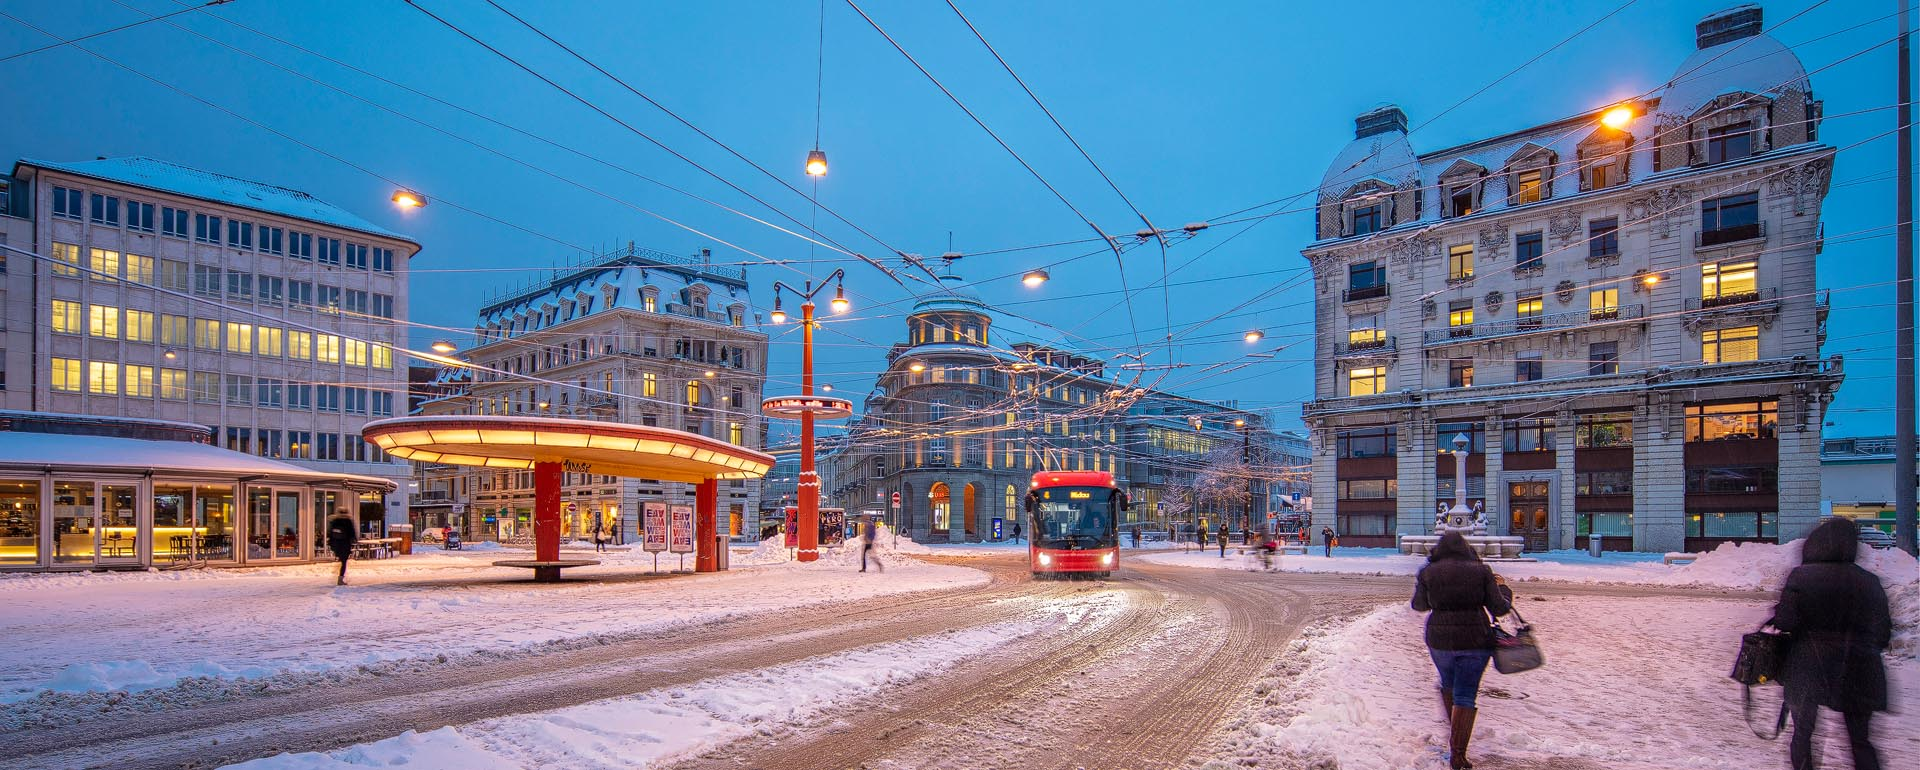 Biel-Bienne Winter am Zentralplatz